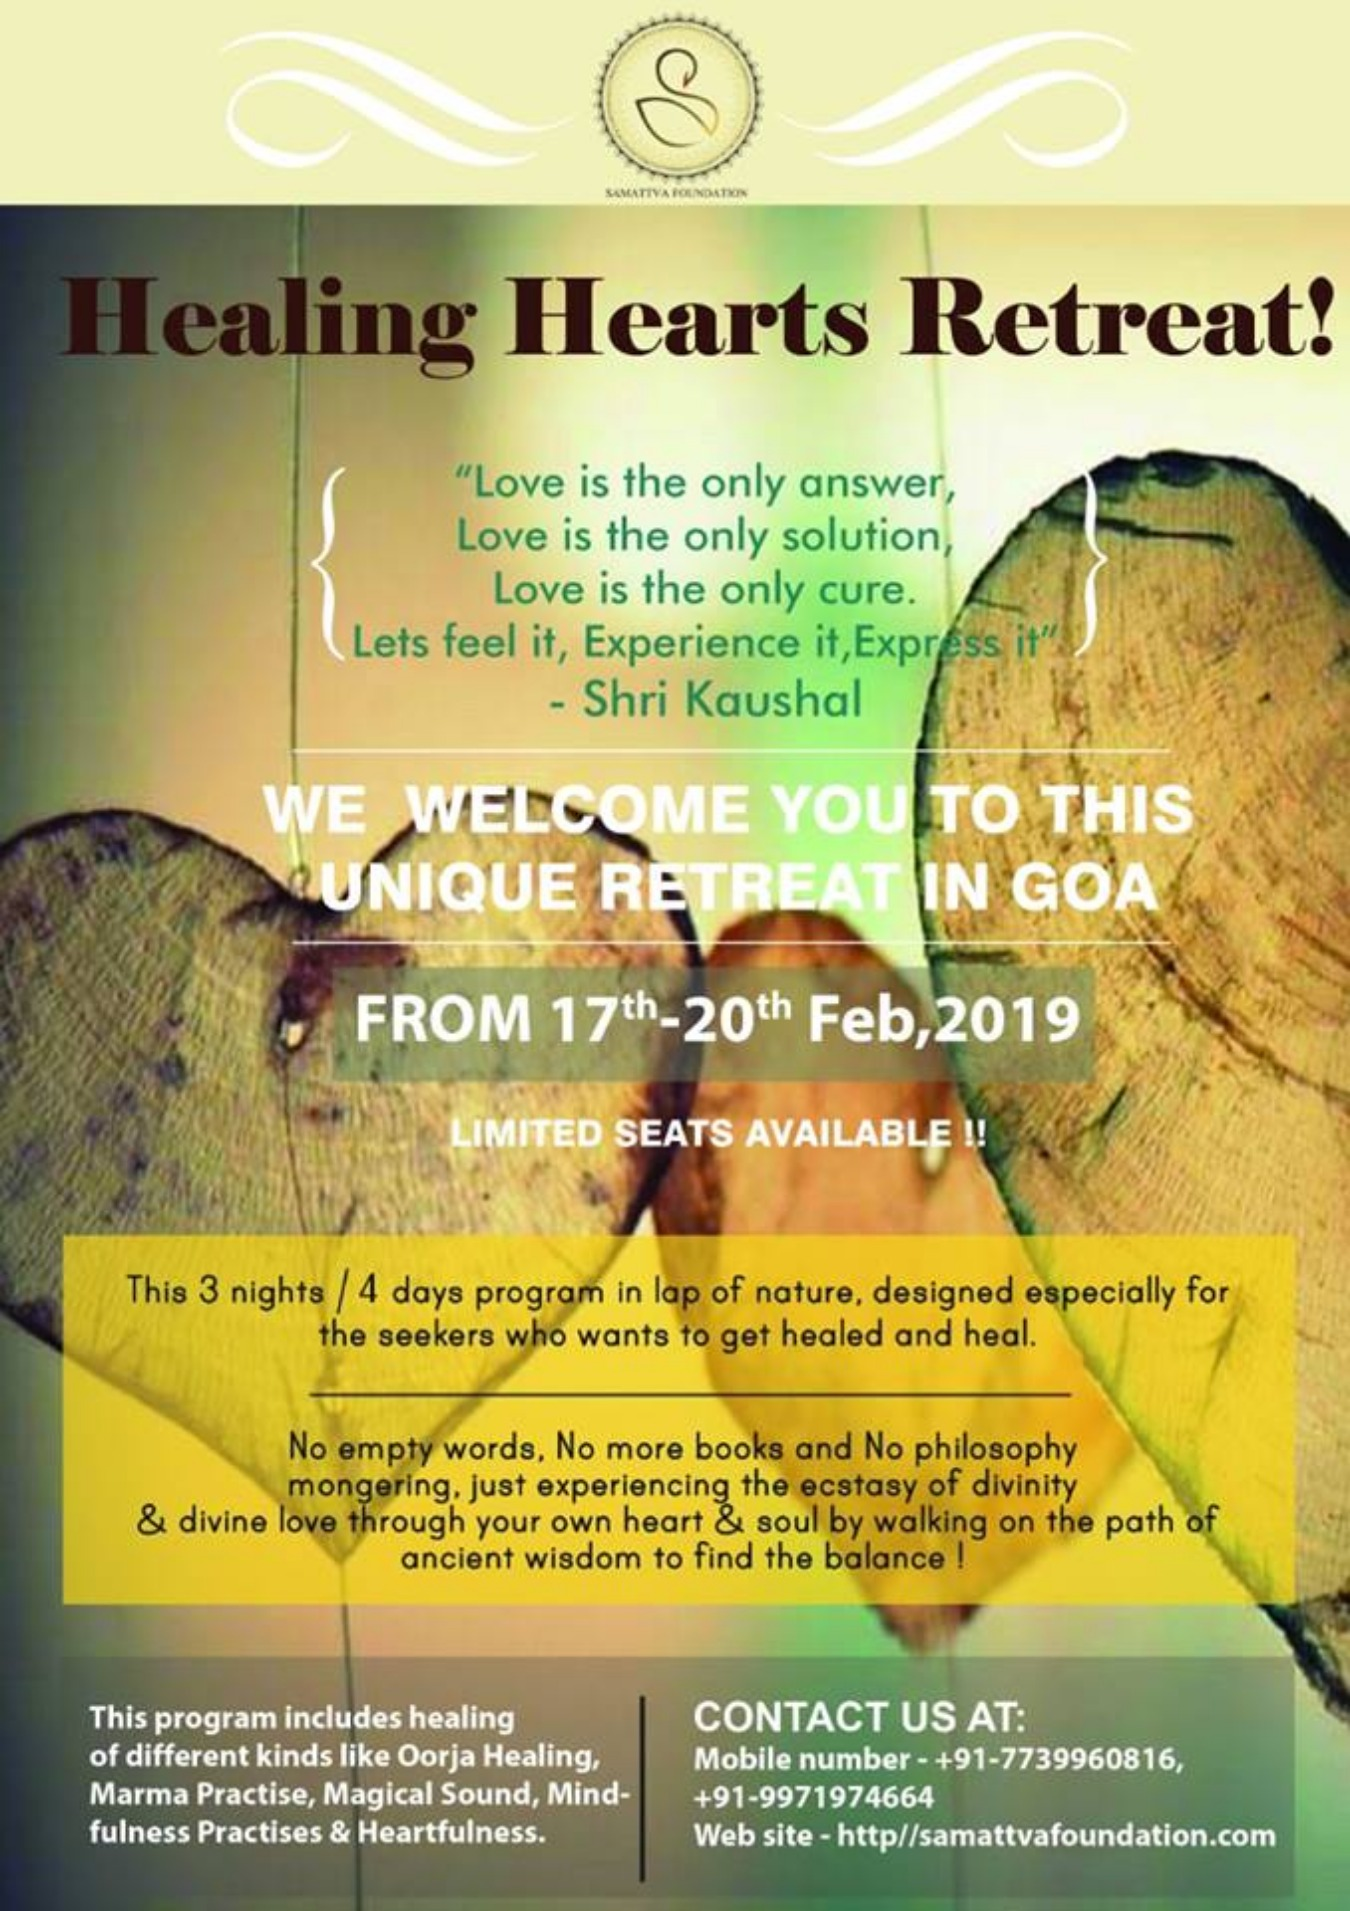 Healing Hearts - Yoga Retreat Tickets by Shri Kaushal, 17 Feb, 2019, Velha  Goa Event